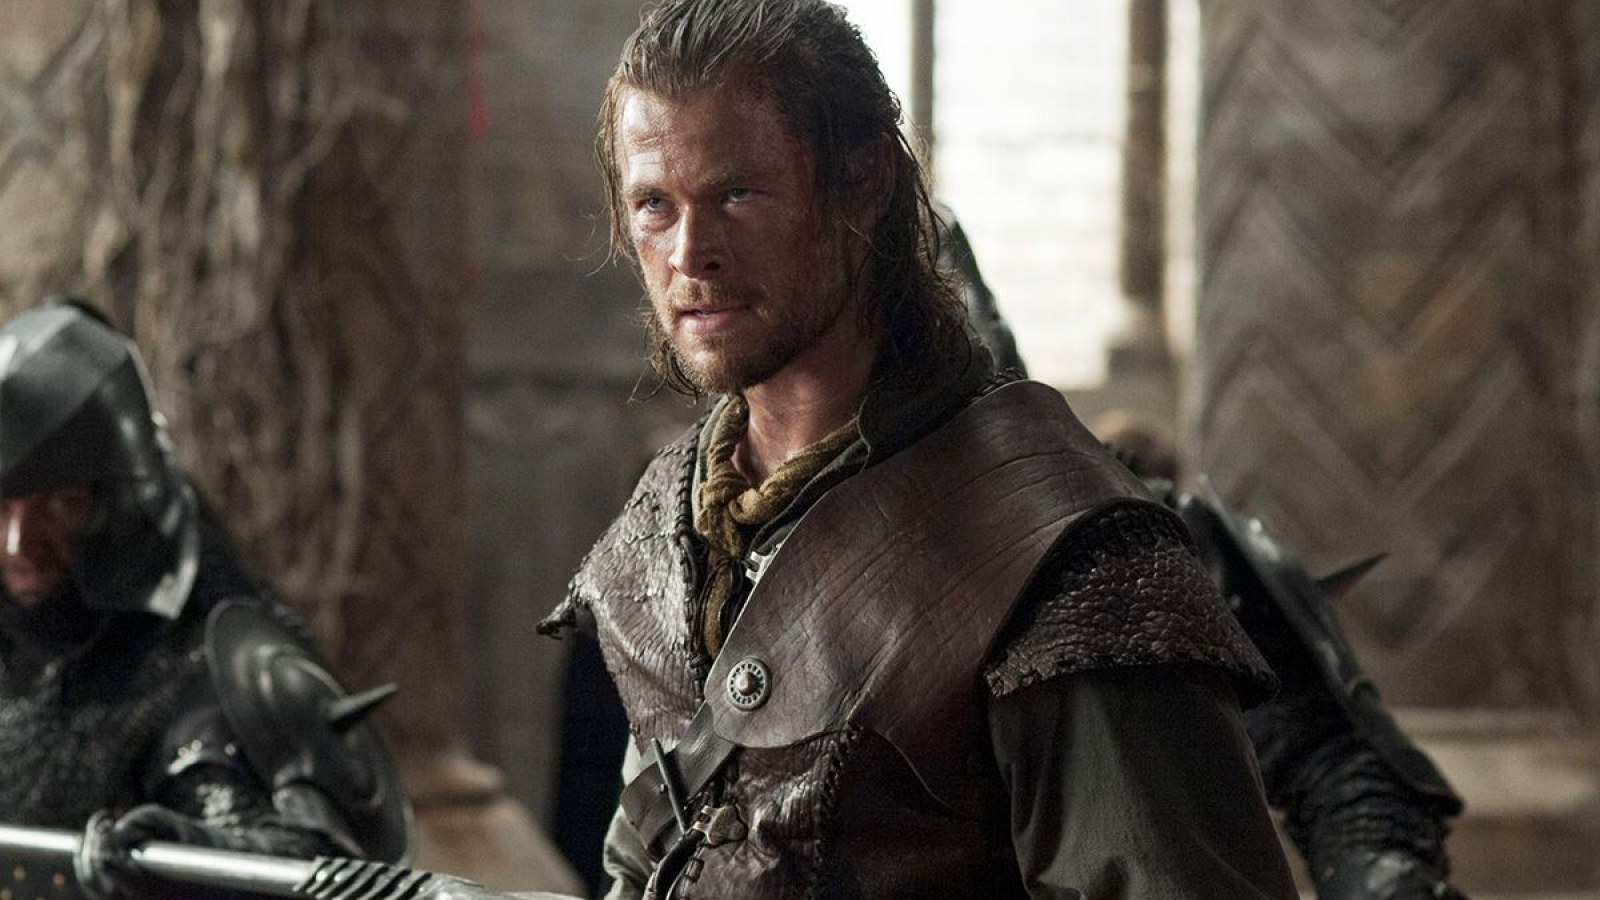 All of Chris Hemsworth's Movies Ranked from Worst to Best